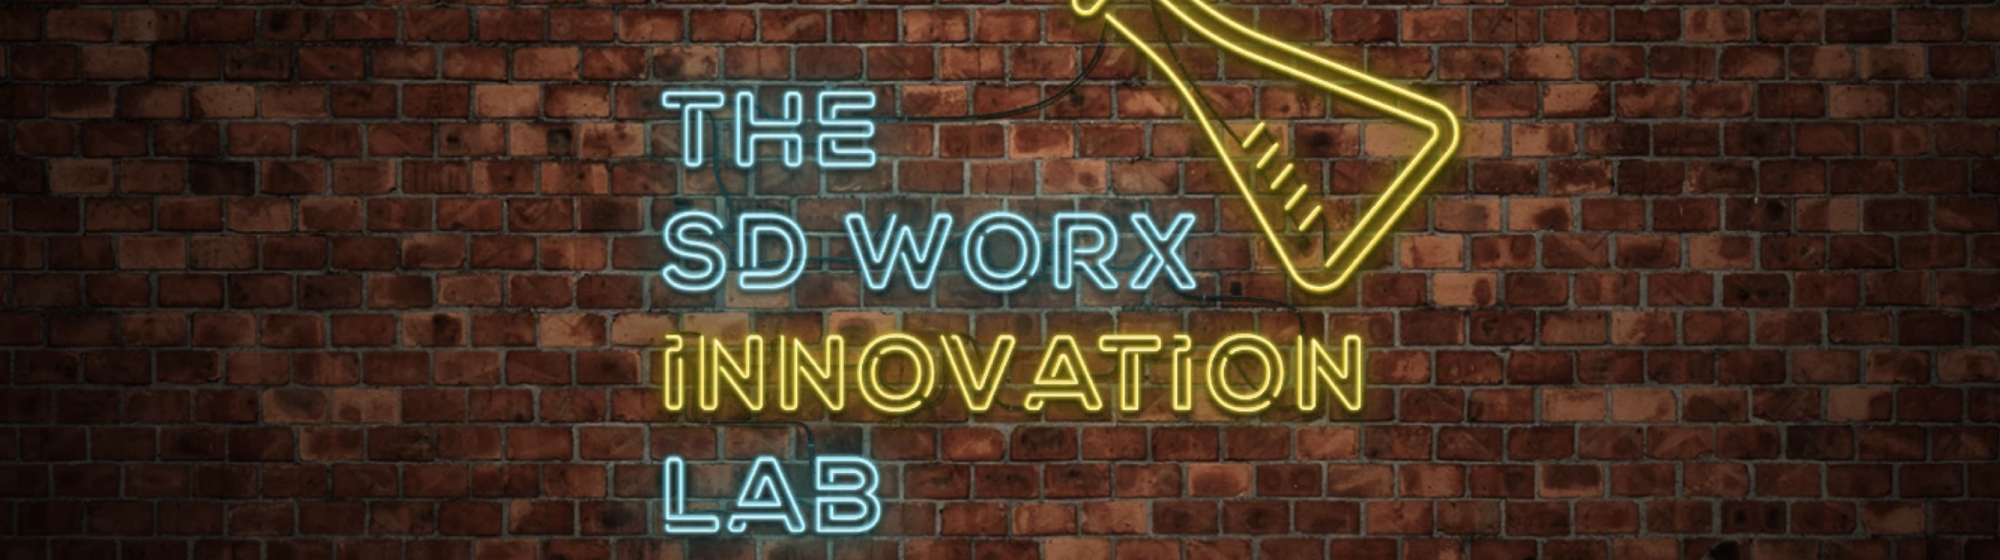 The Sd Worx Innovation Lab